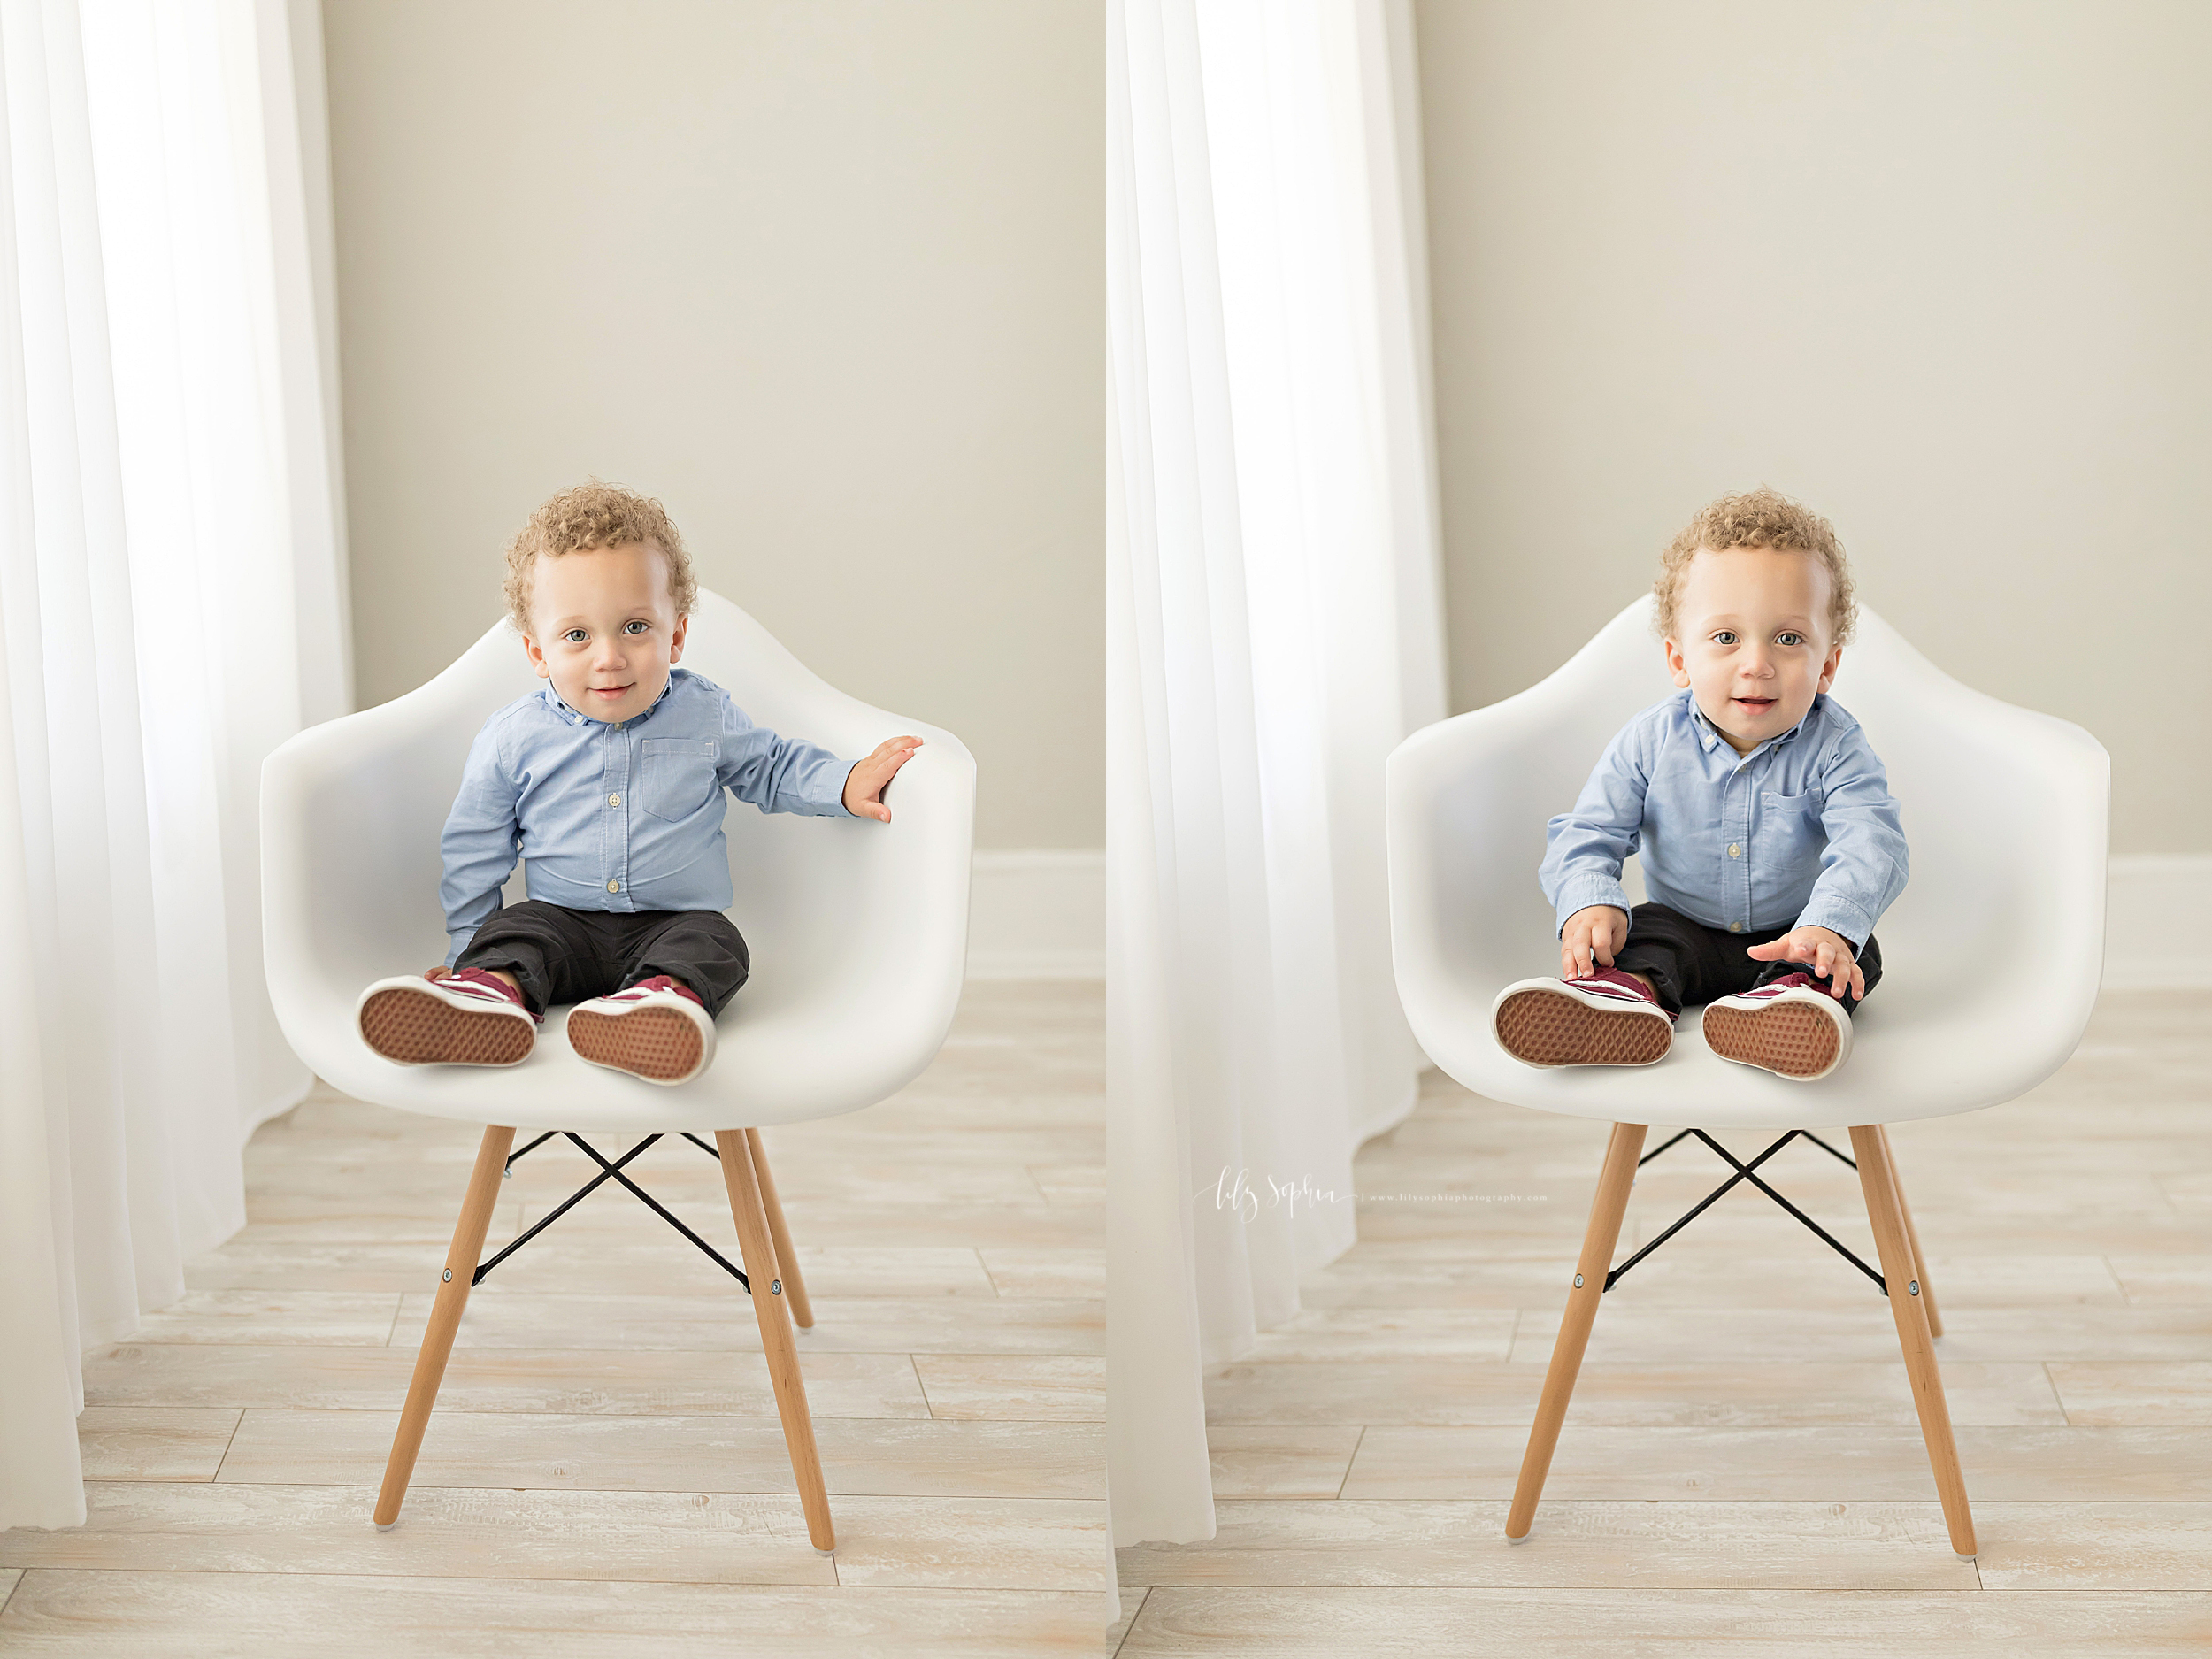 Side by side images of a one year old baby boy, sitting in a chair and smiling for the camera.